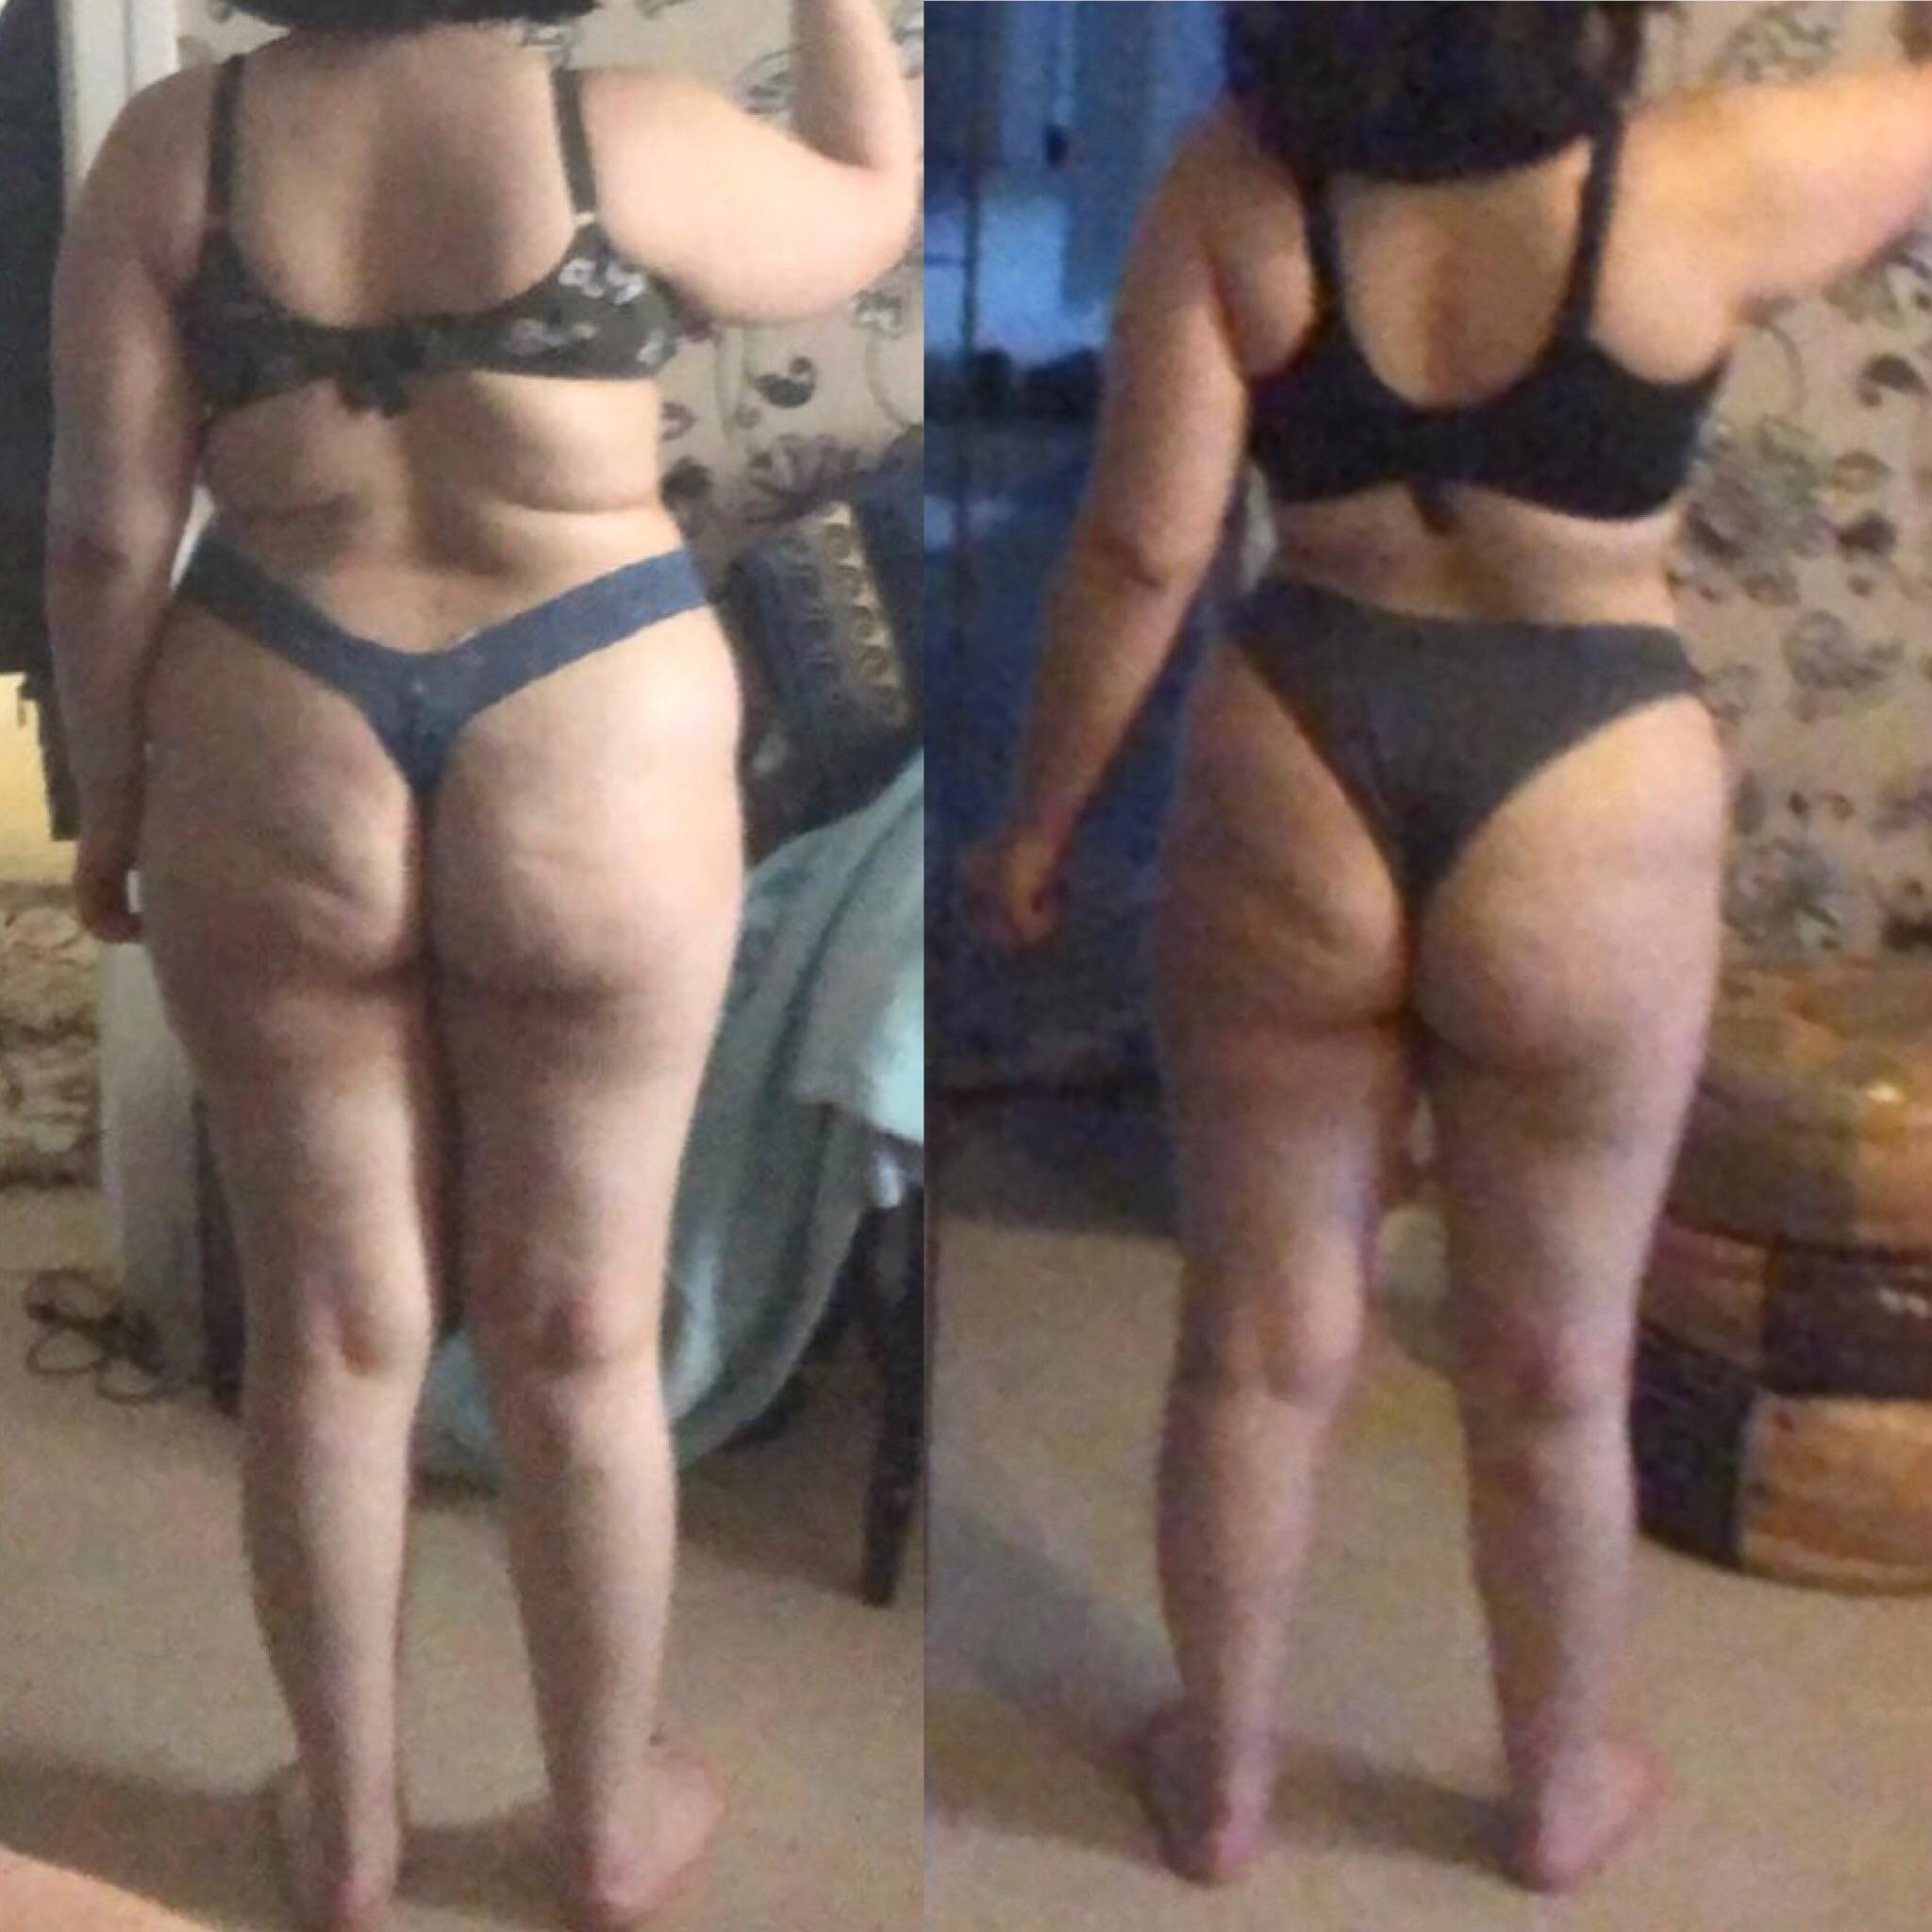 5'5 Female 23 lbs Weight Loss Before and After 195 lbs to 172 lbs